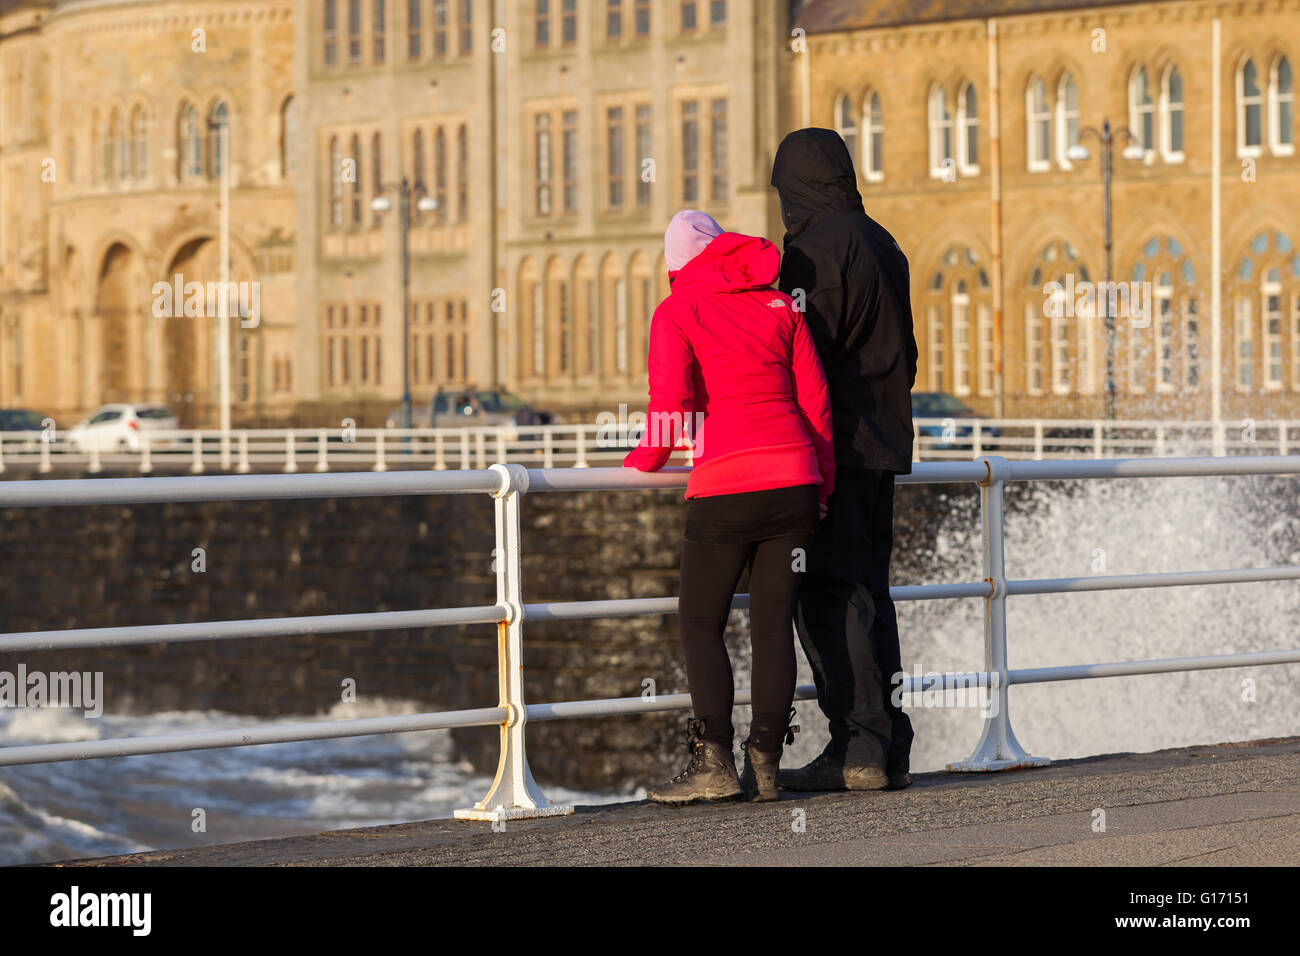 A couple looking over railings on a promenade - Stock Image